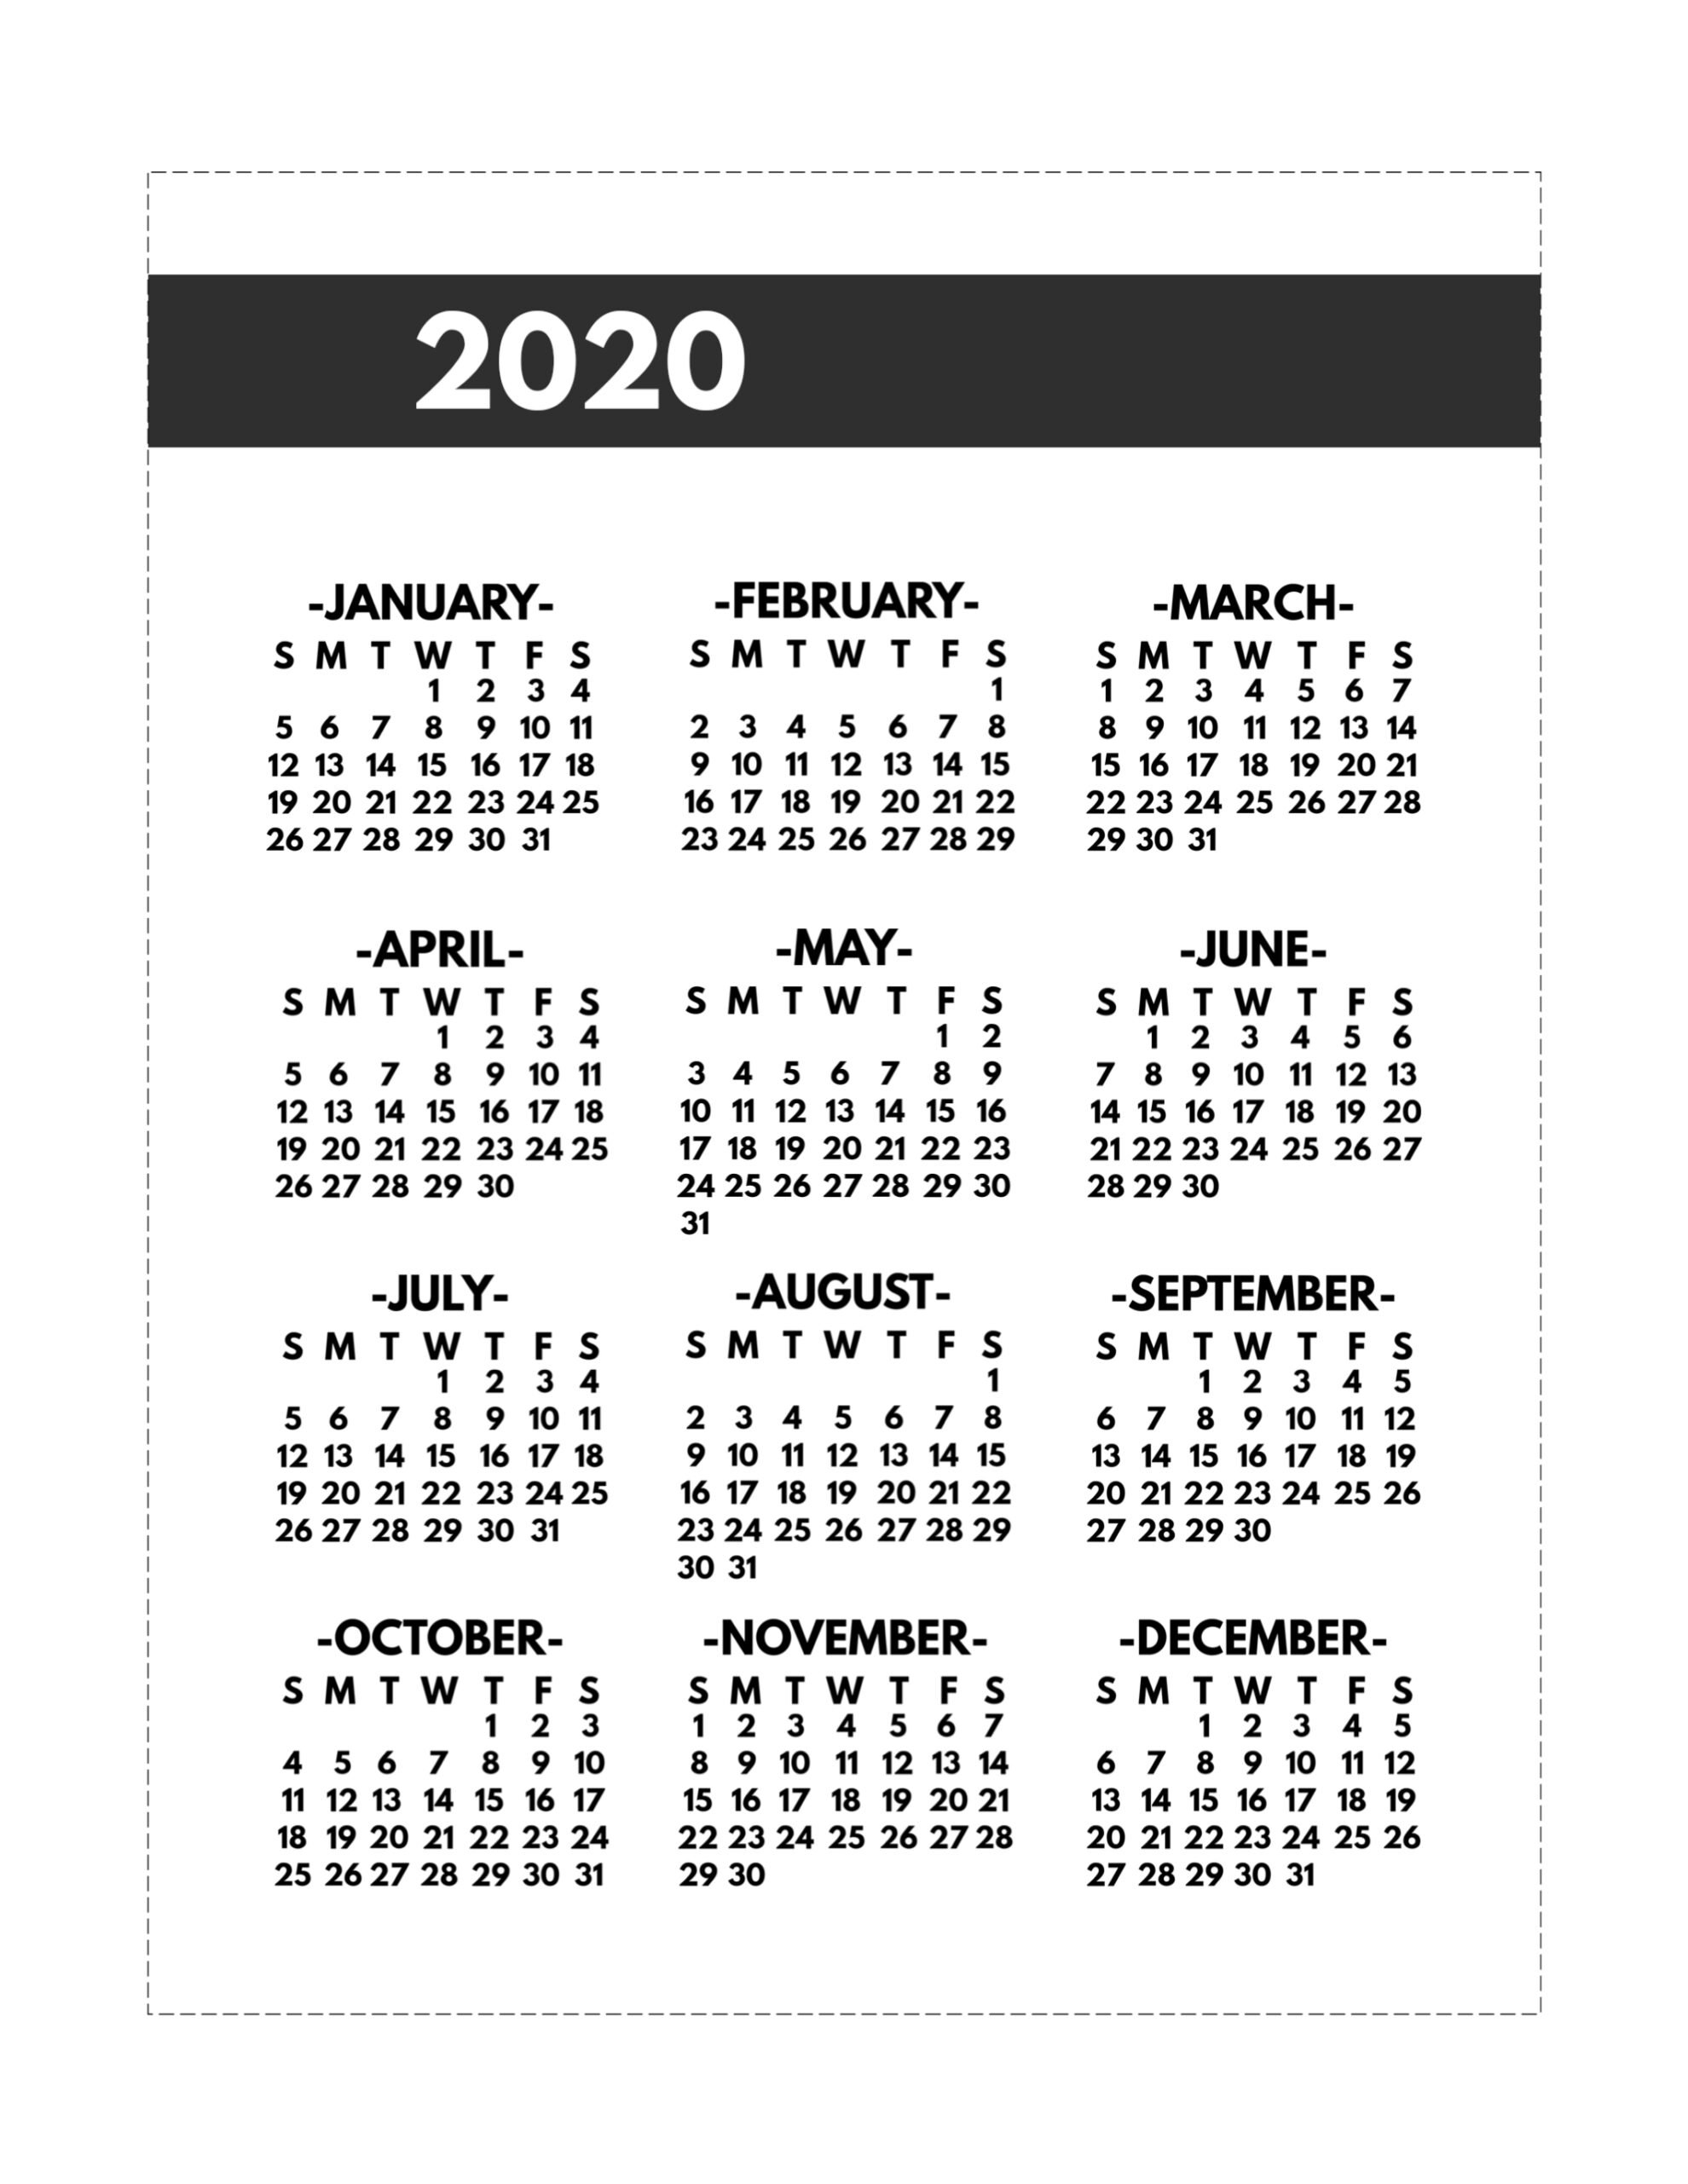 2020 Printable One Page Year At A Glance Calendar - Paper 8 By 11 Size Calendar Template